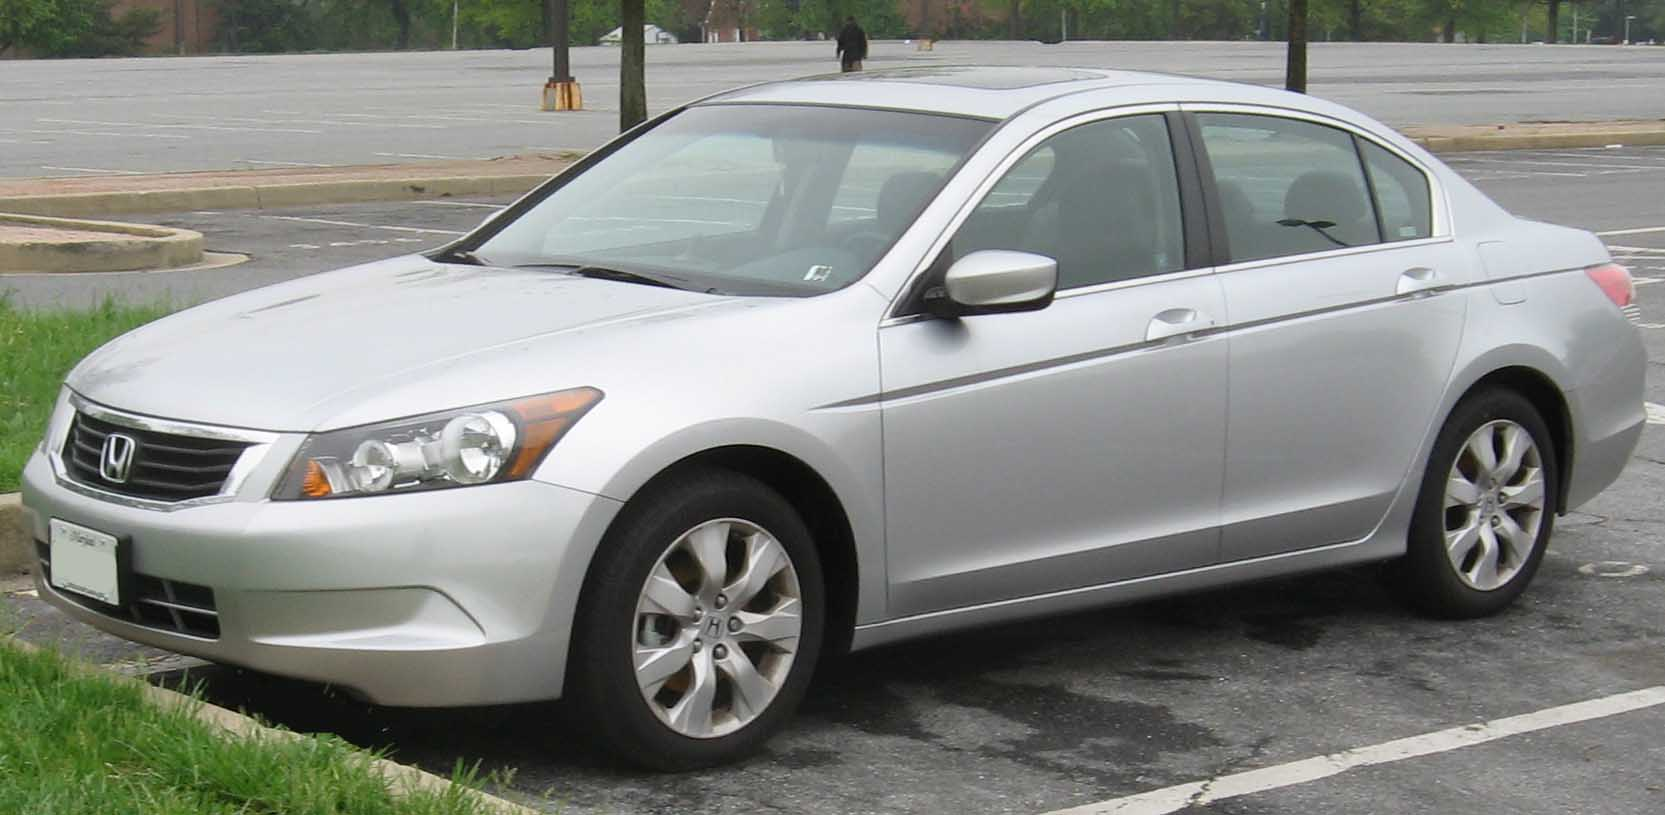 2008 Honda Accord Photographed In College Park Maryland USA Category